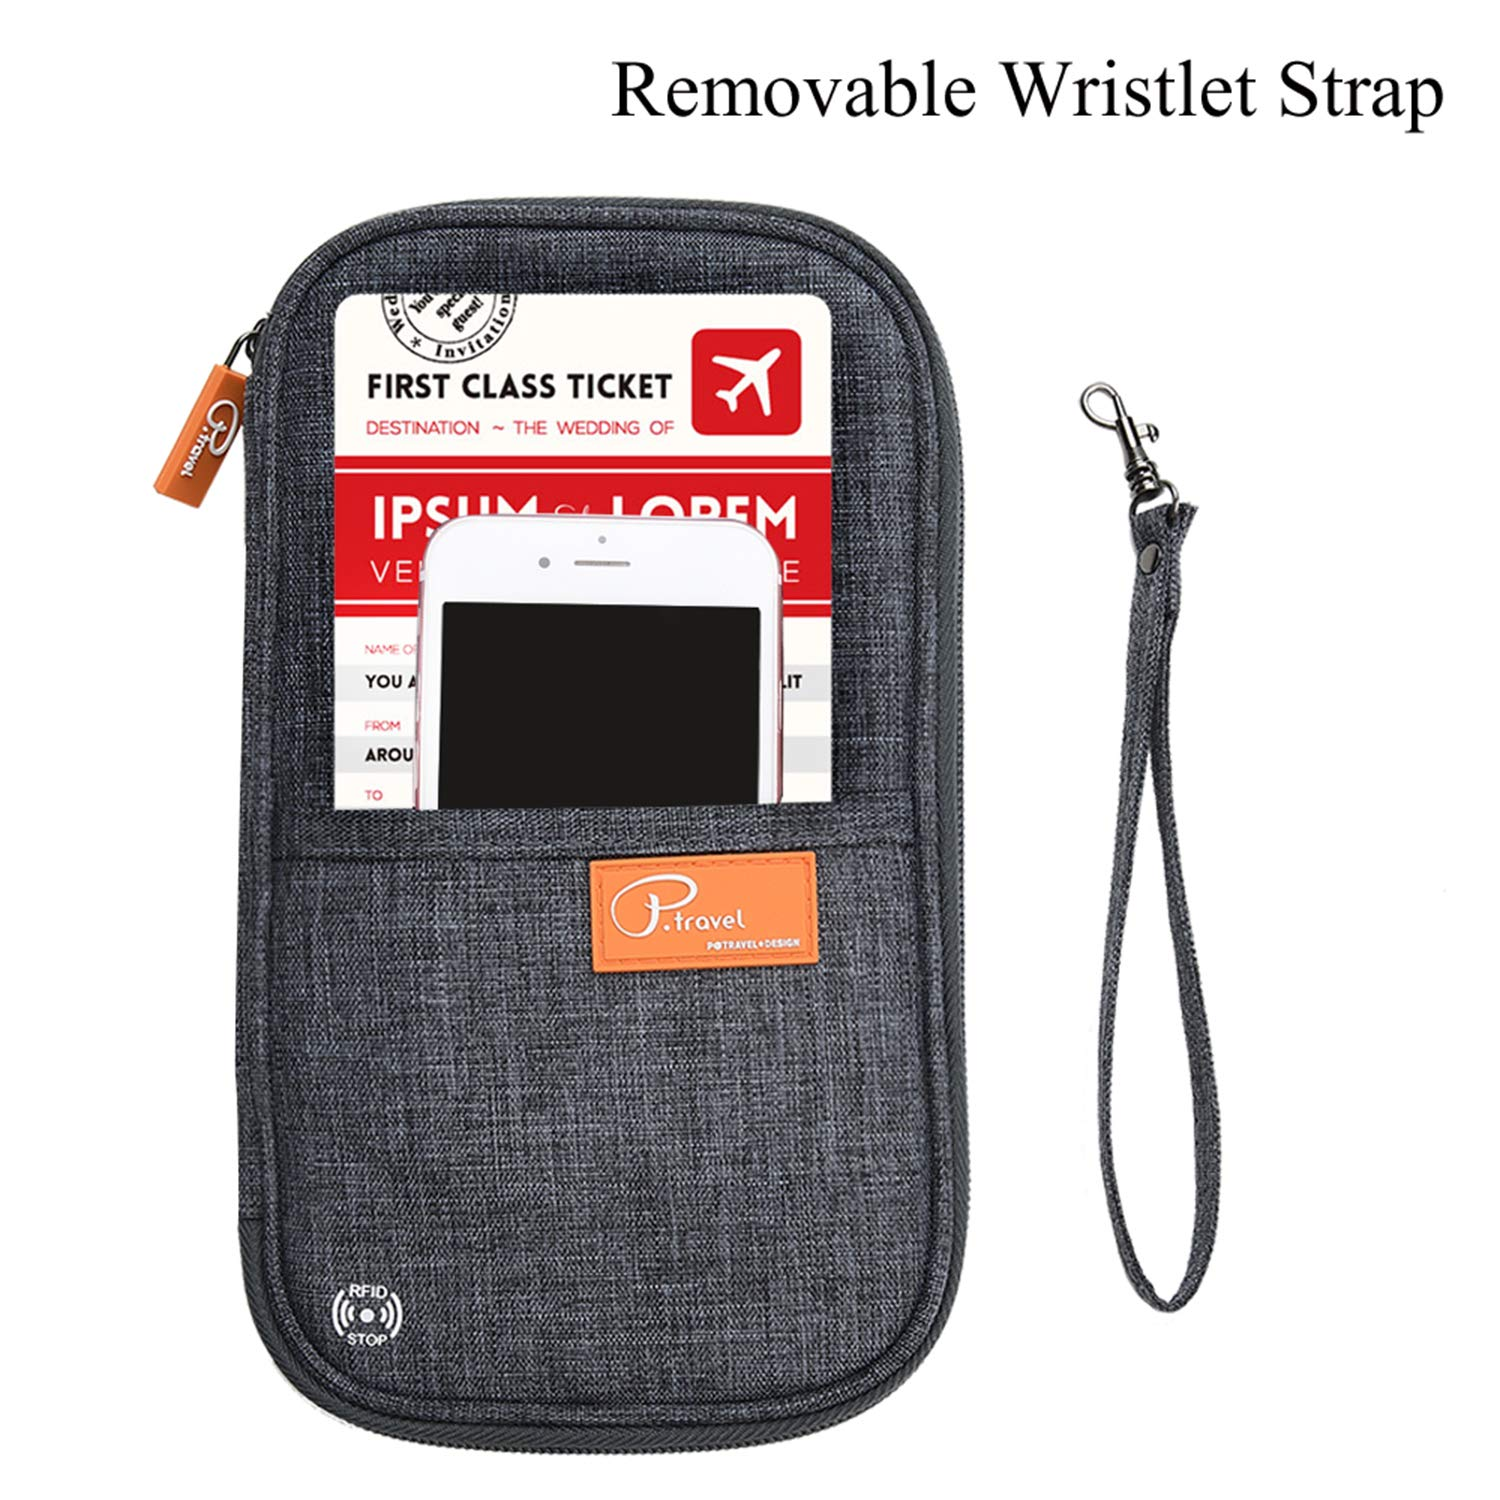 RFID Blocking Travel Passport Wallet Family Passport Holder Credit Card Ticket Document Organizer Bag with 3pcs luggage Tags (Grey) by Marcoon (Image #2)